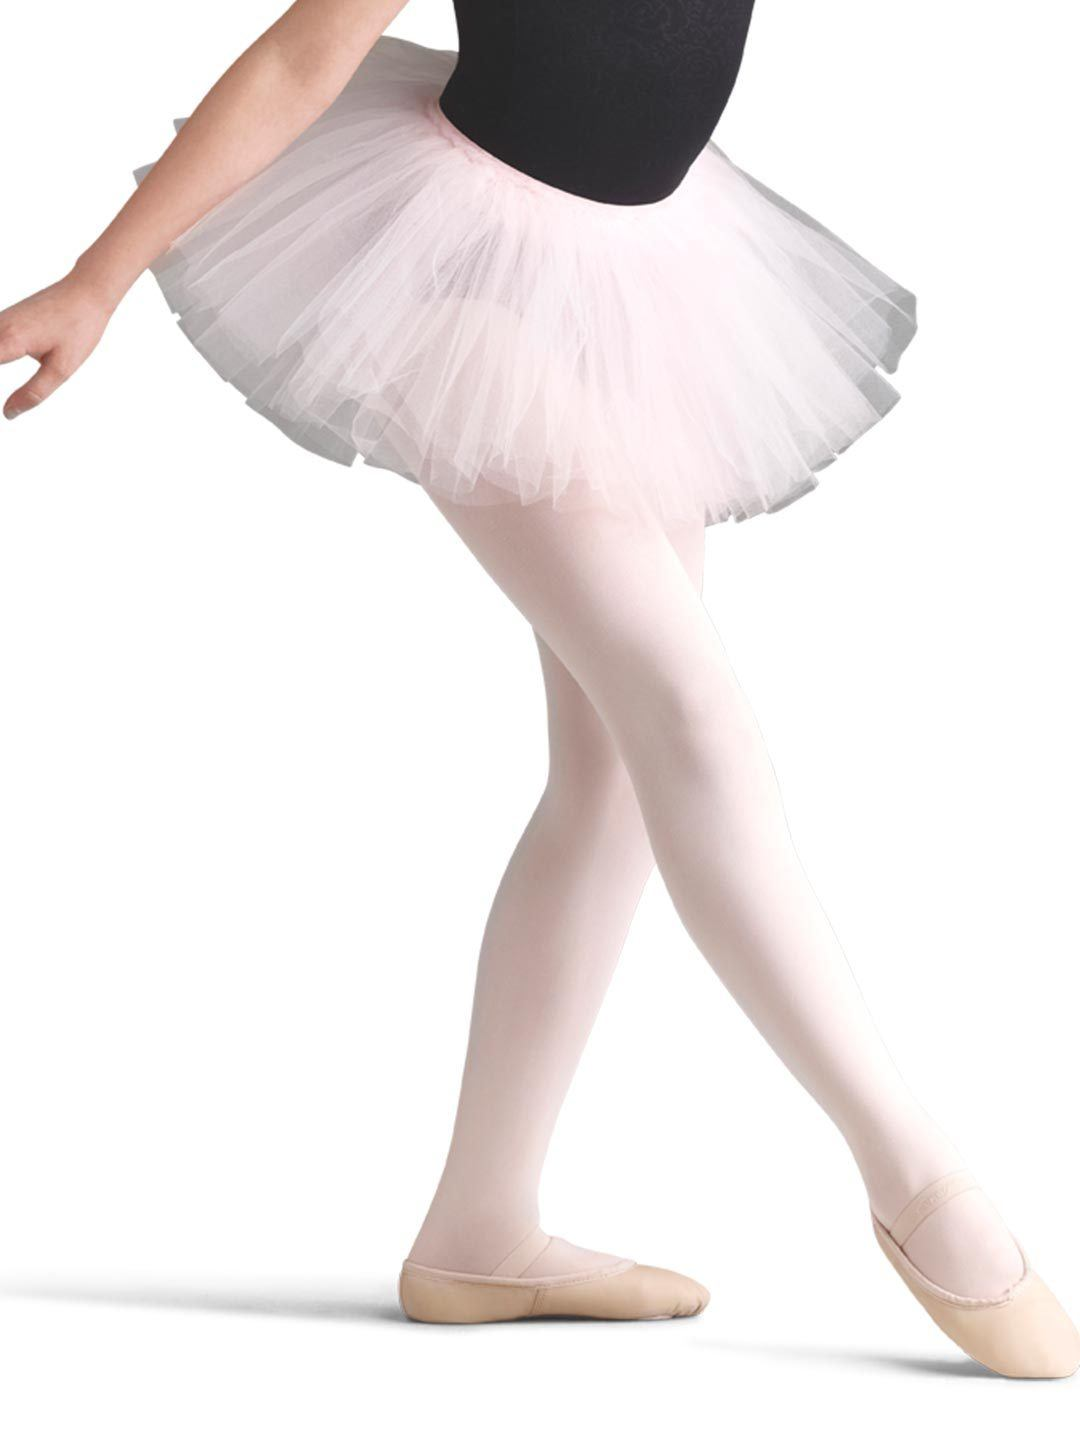 b6781db3c1 Capezio Waiting for a Prince Tutu Skirt - Girls - Pink - Style:10728C